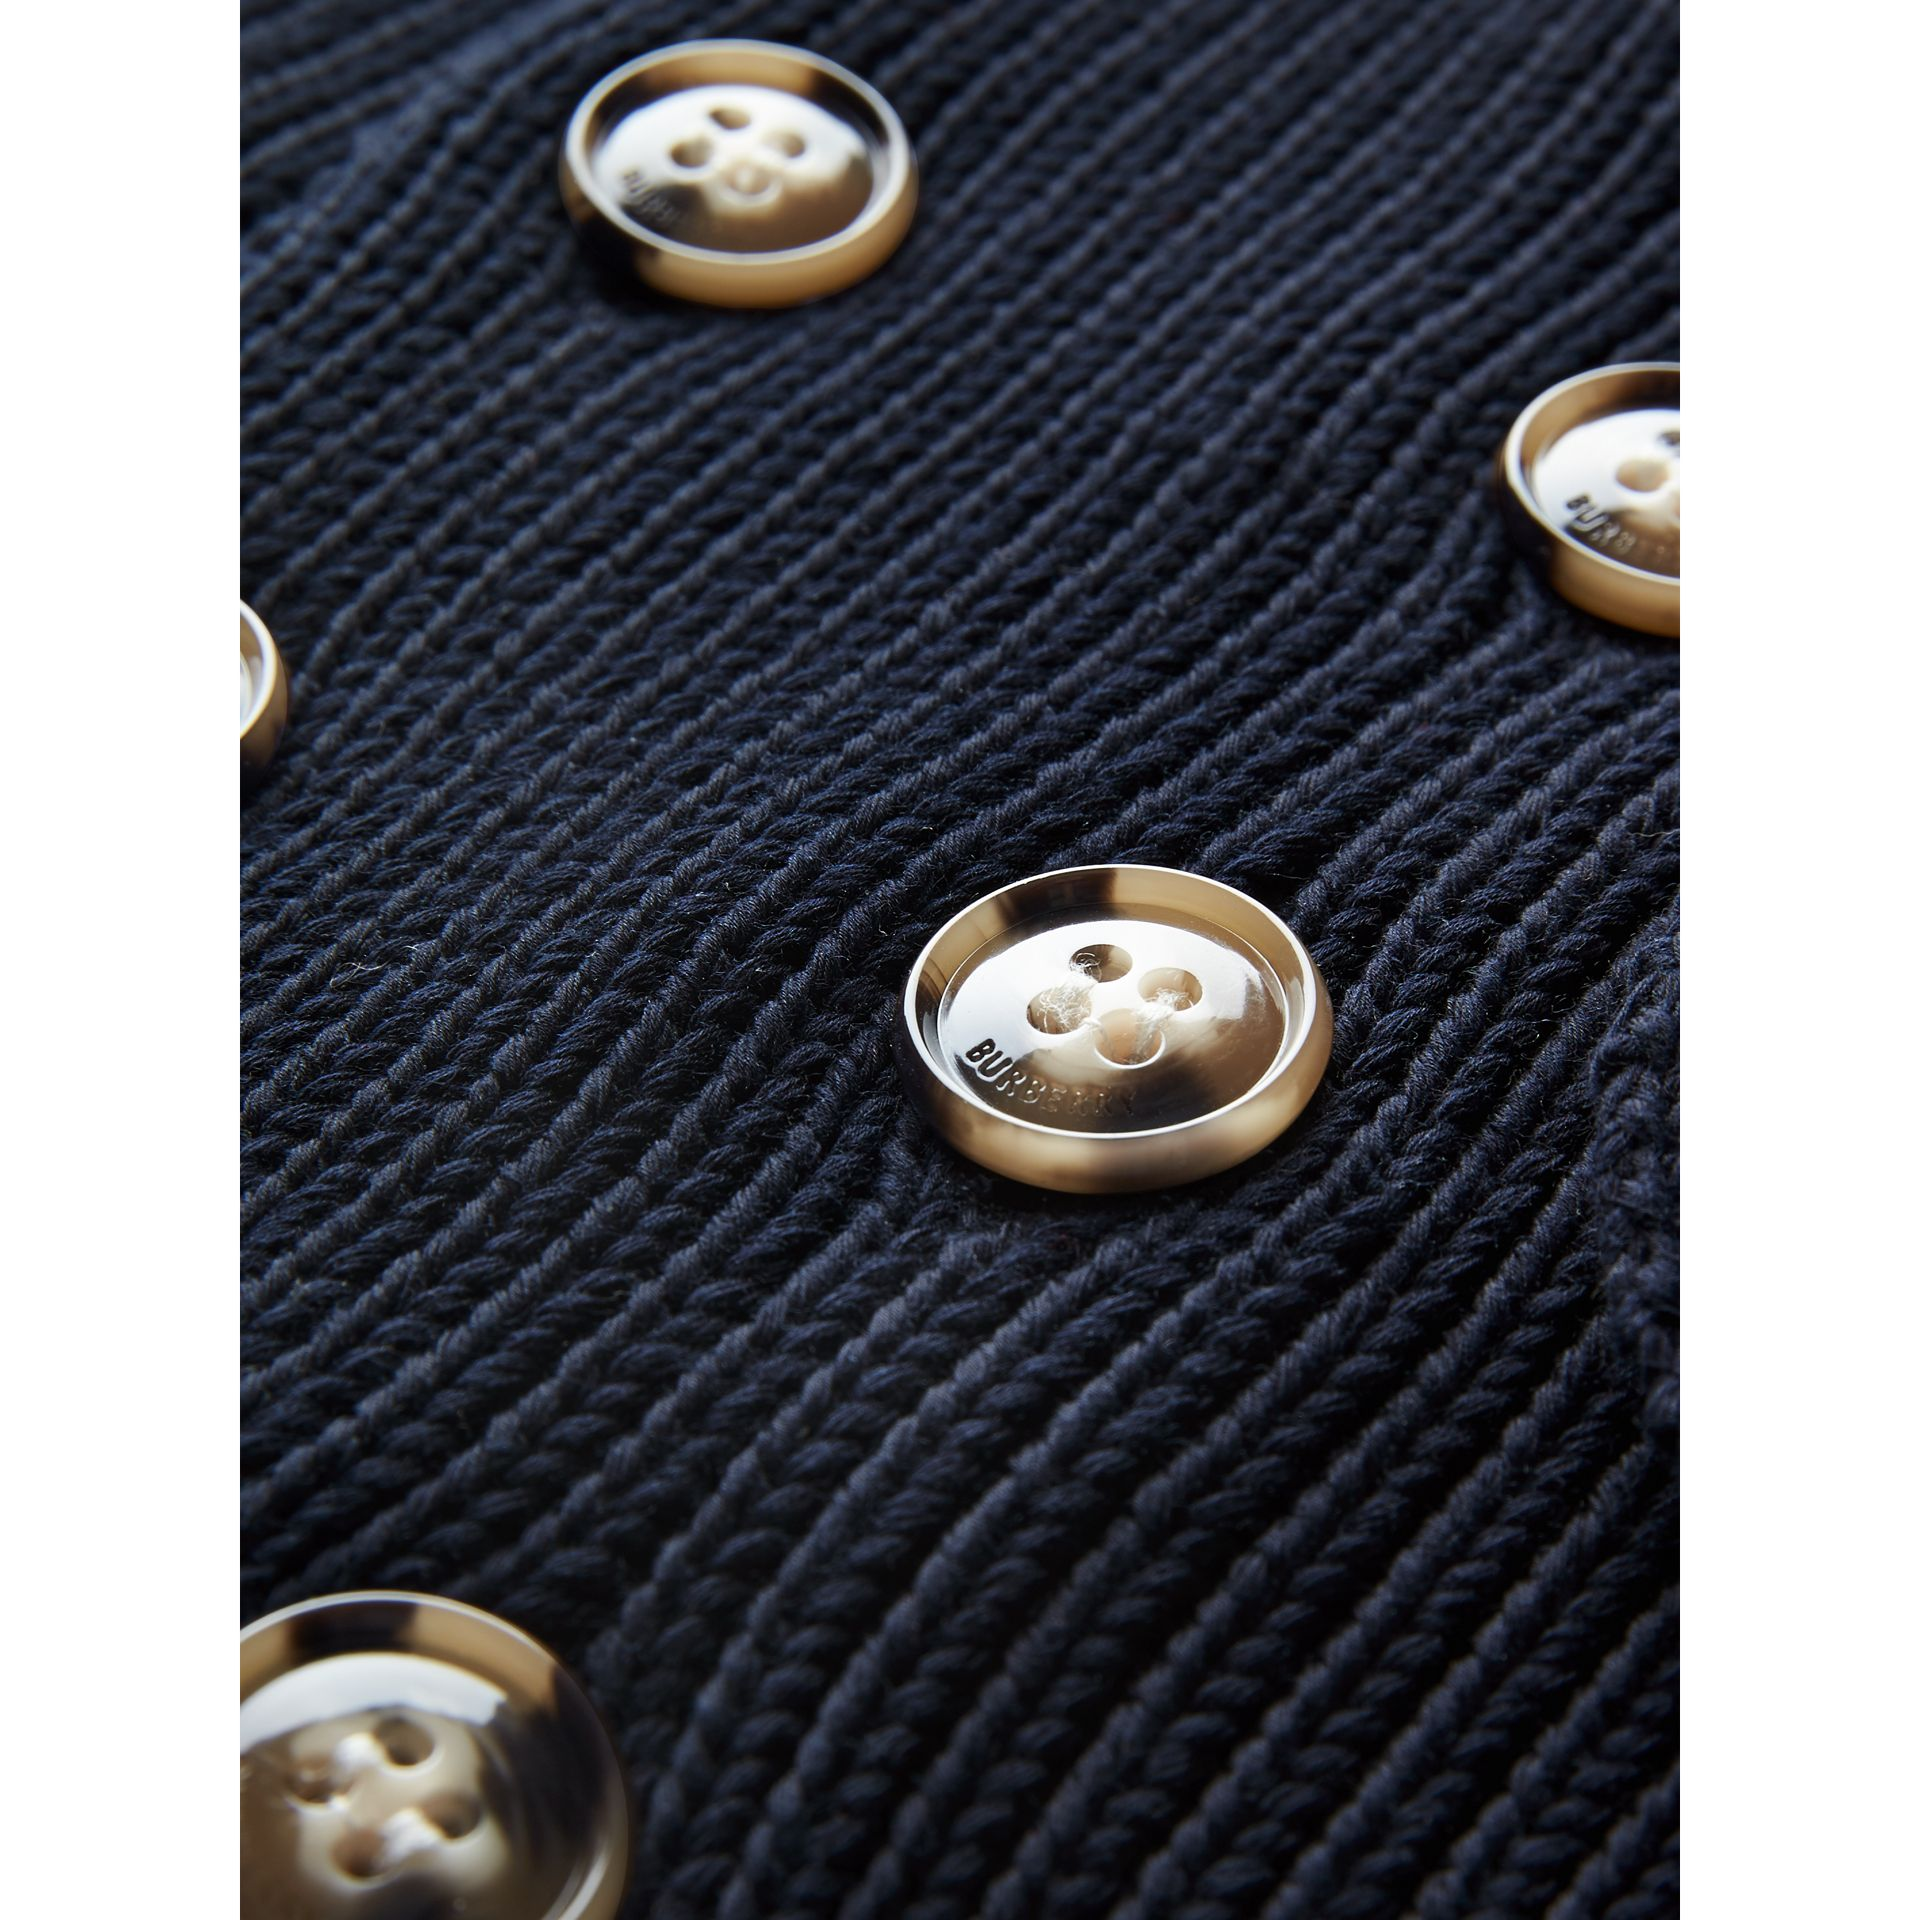 Cotton Knit Pea Coat Cardigan in Navy | Burberry United Kingdom - gallery image 1